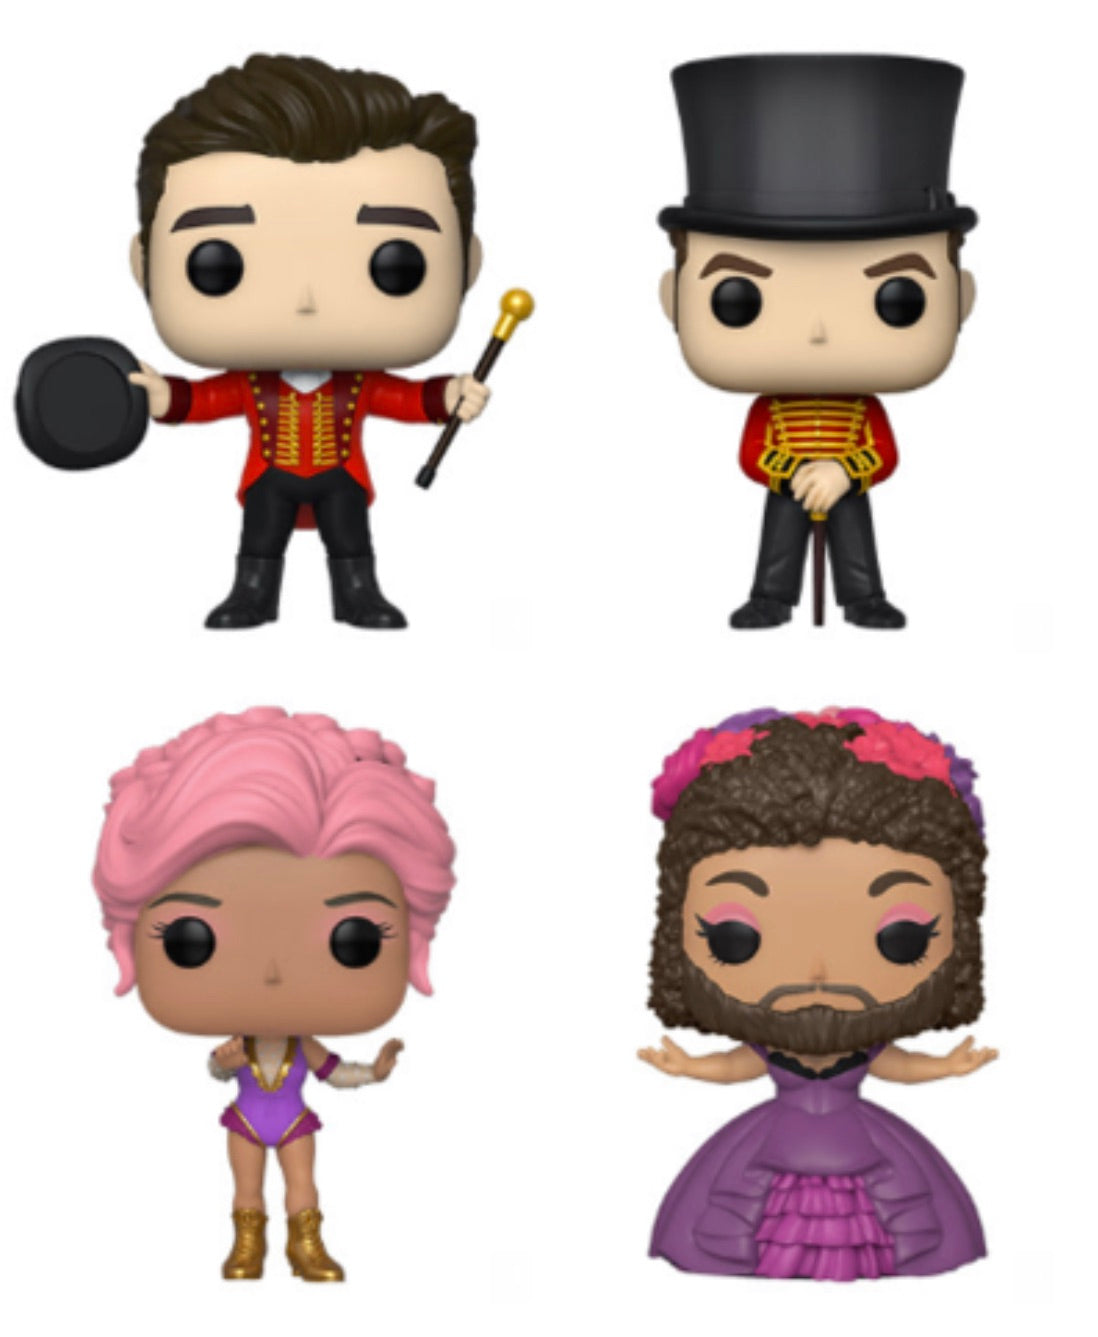 THE GREATEST SHOWMAN FUNKO POP! COMPLETE SET OF 4 (IN STOCK)